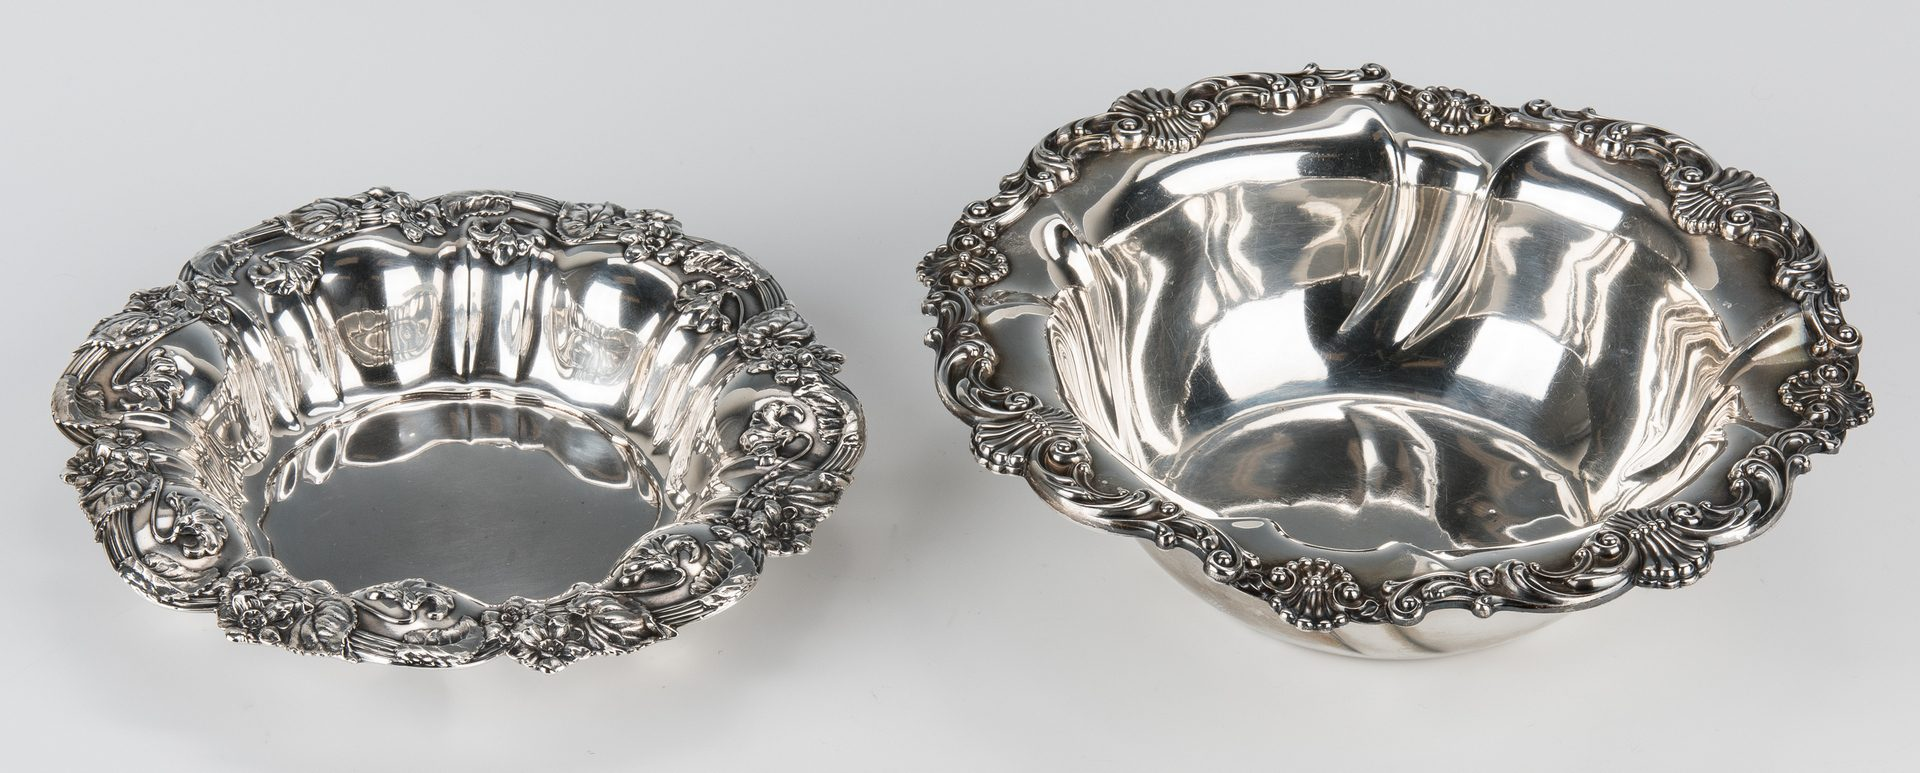 Lot 700: 3 Sterling Silver Table Items, incl. Repousse